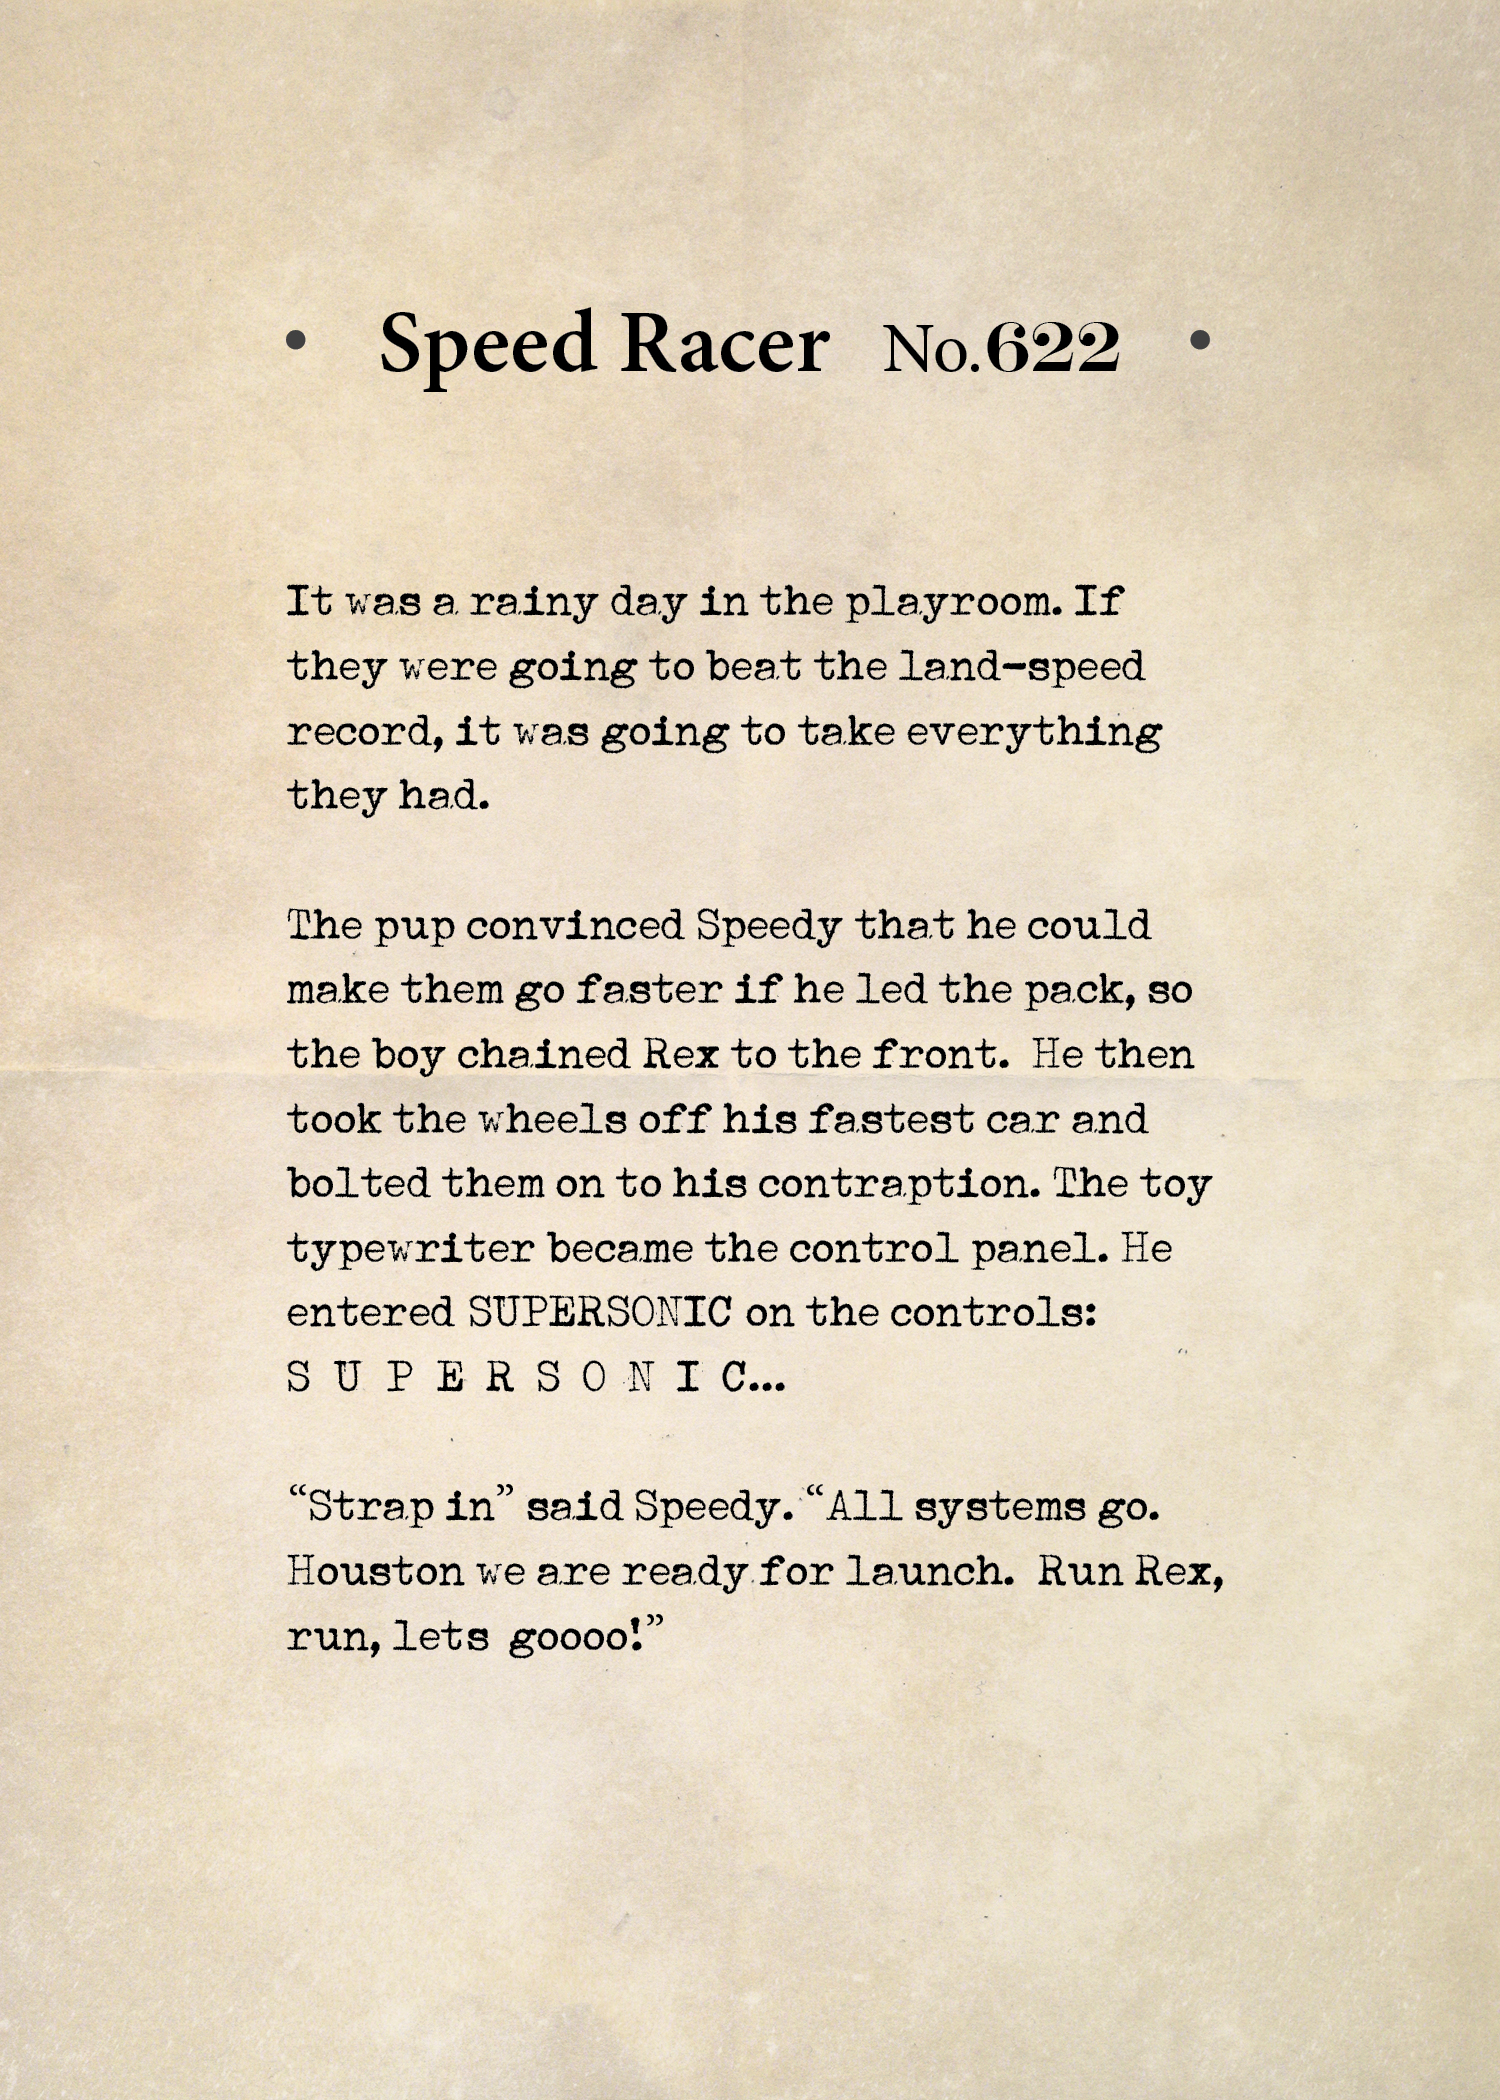 Speed Racer 622